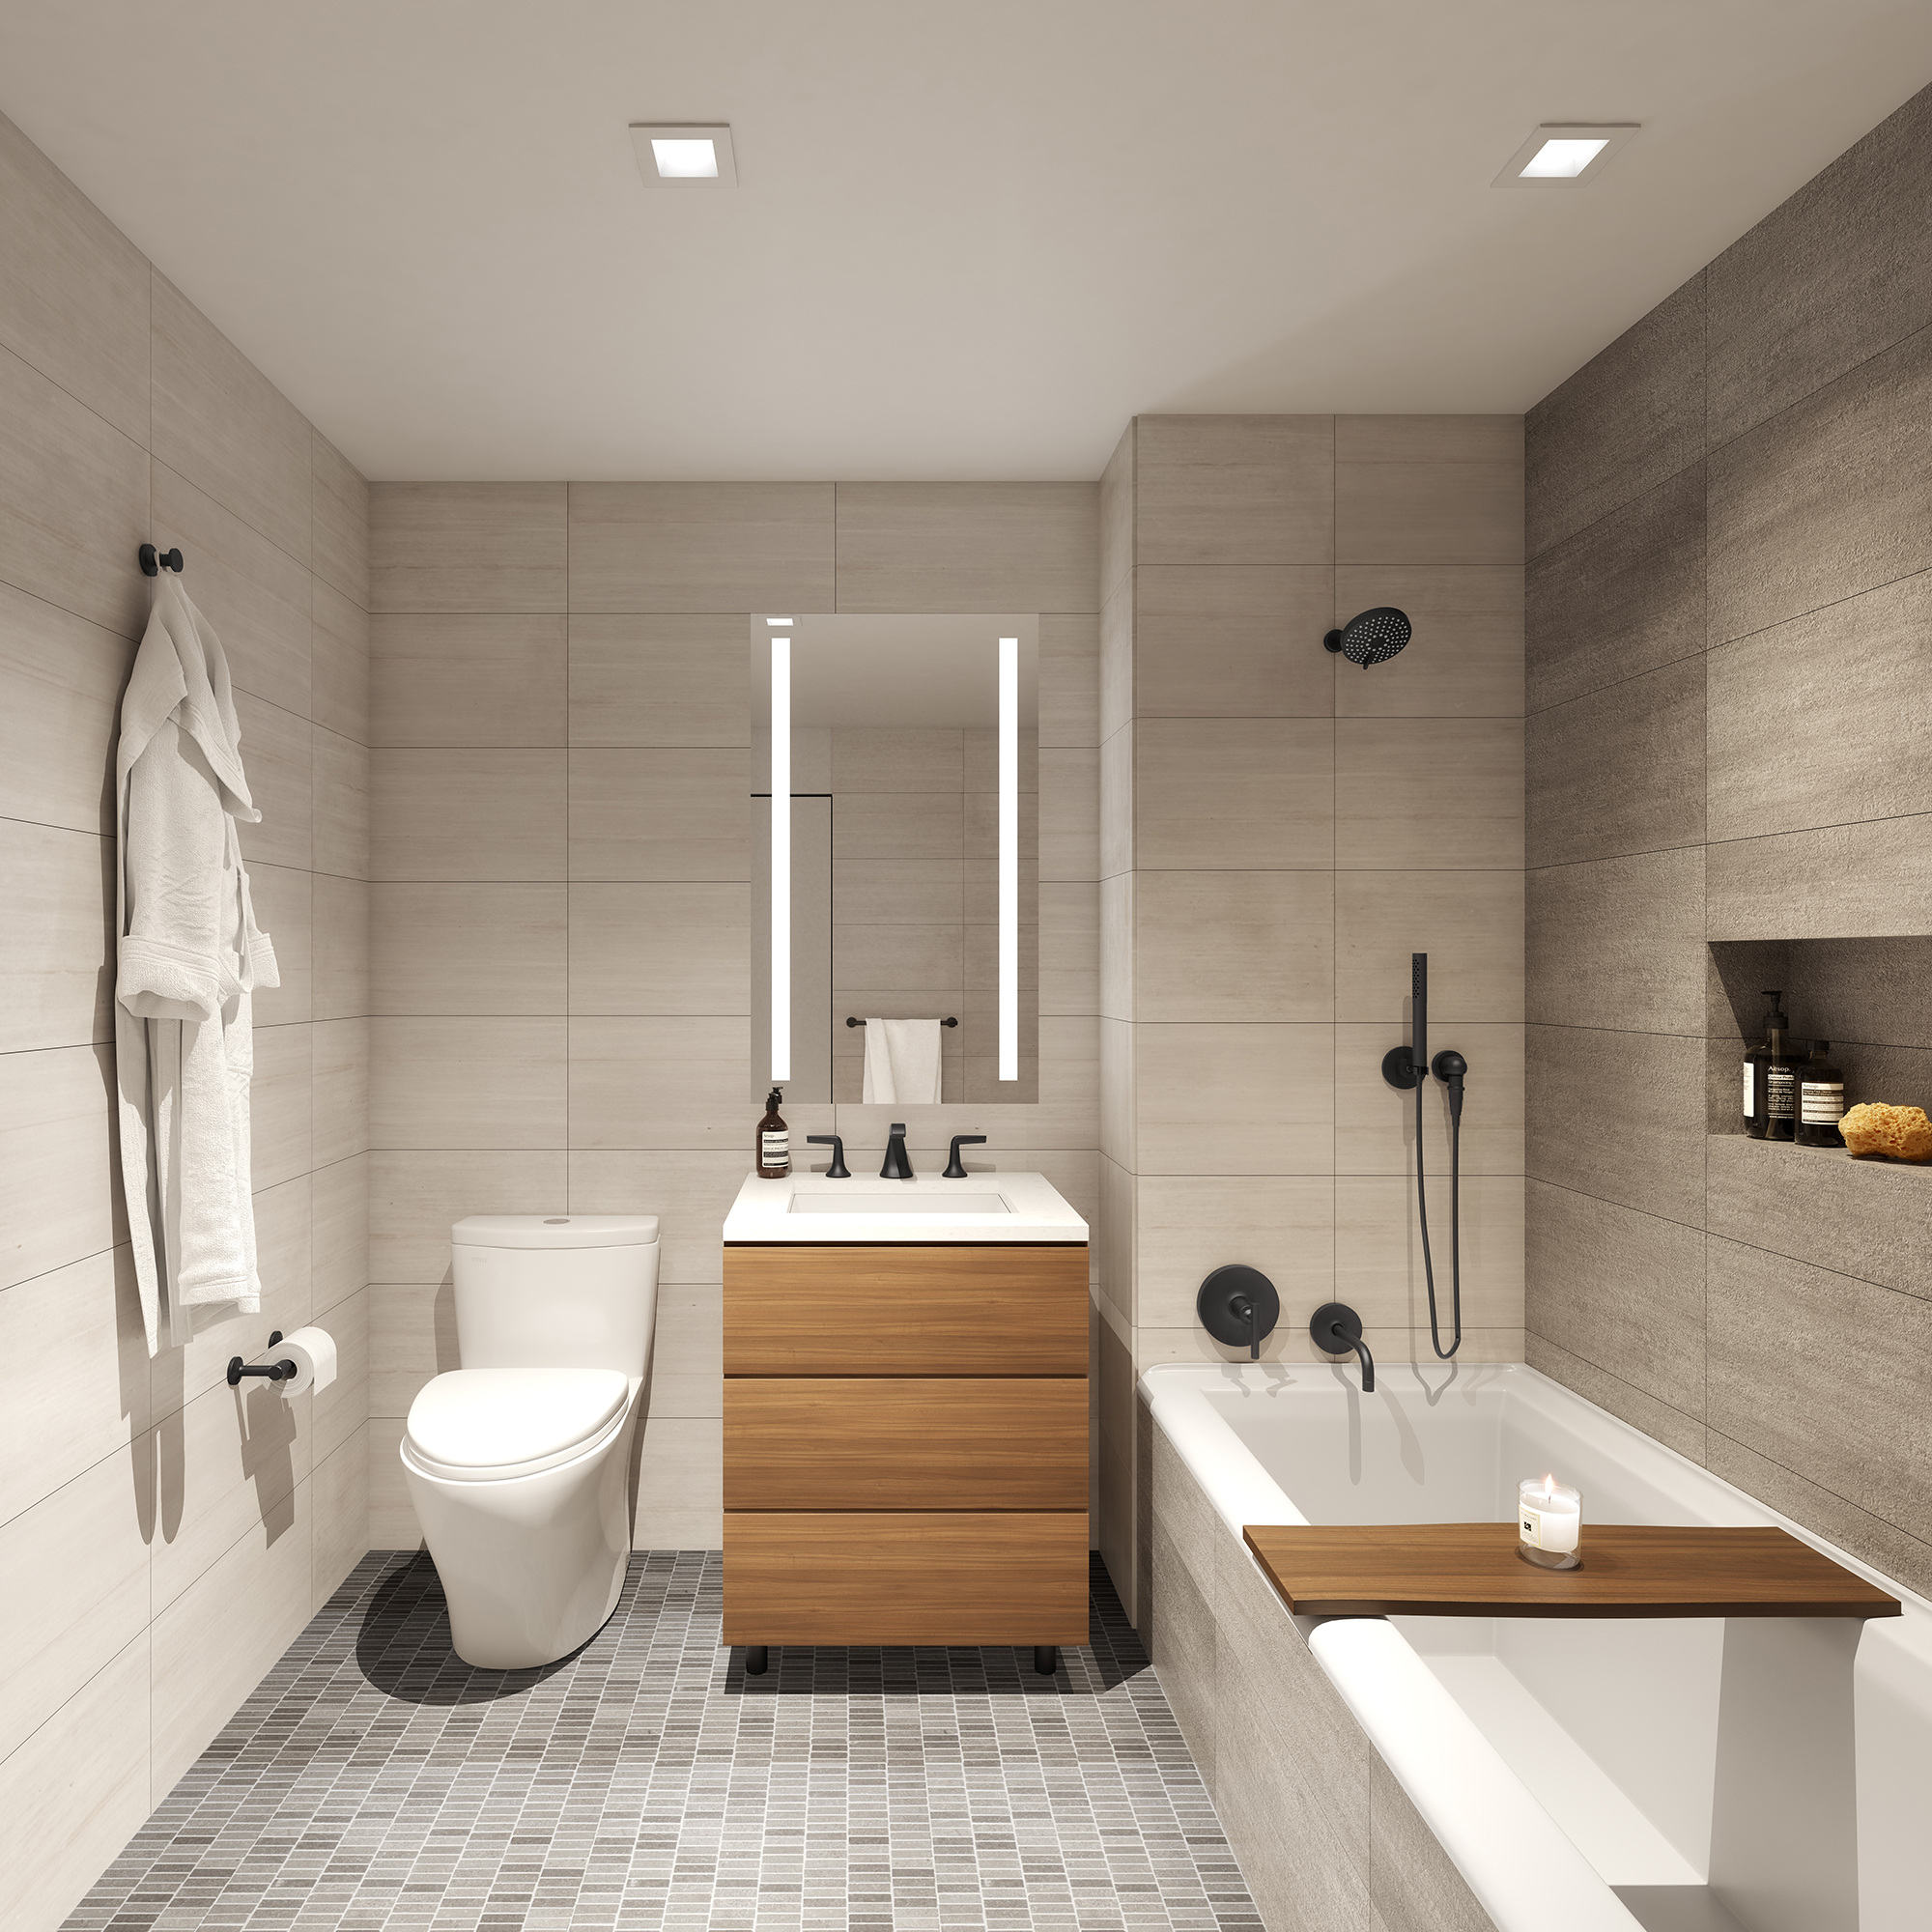 Secondary Bathroom with Matte Black Fixtures